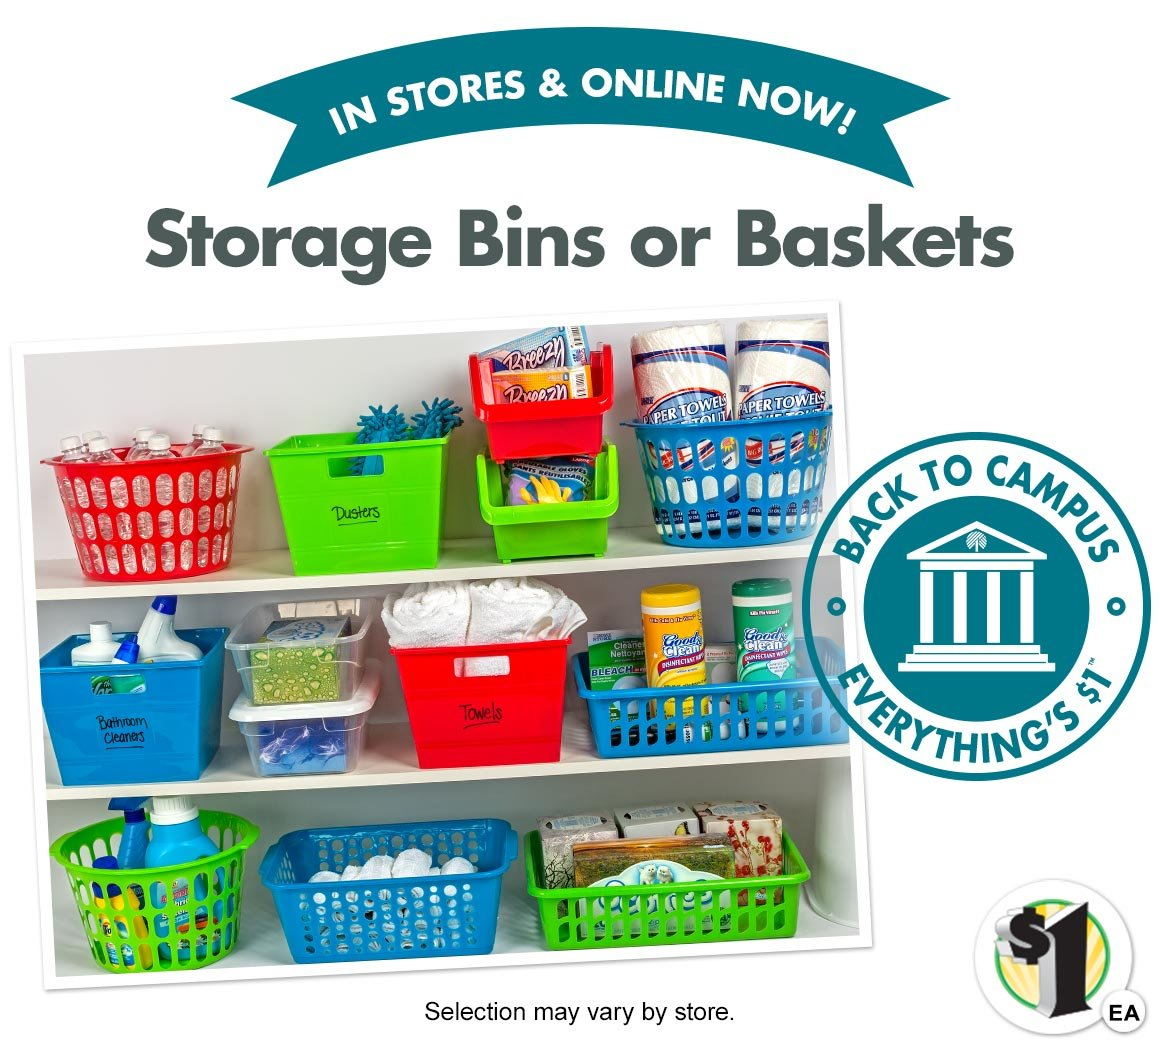 In stores now storage bins and baskets selection may vary by store